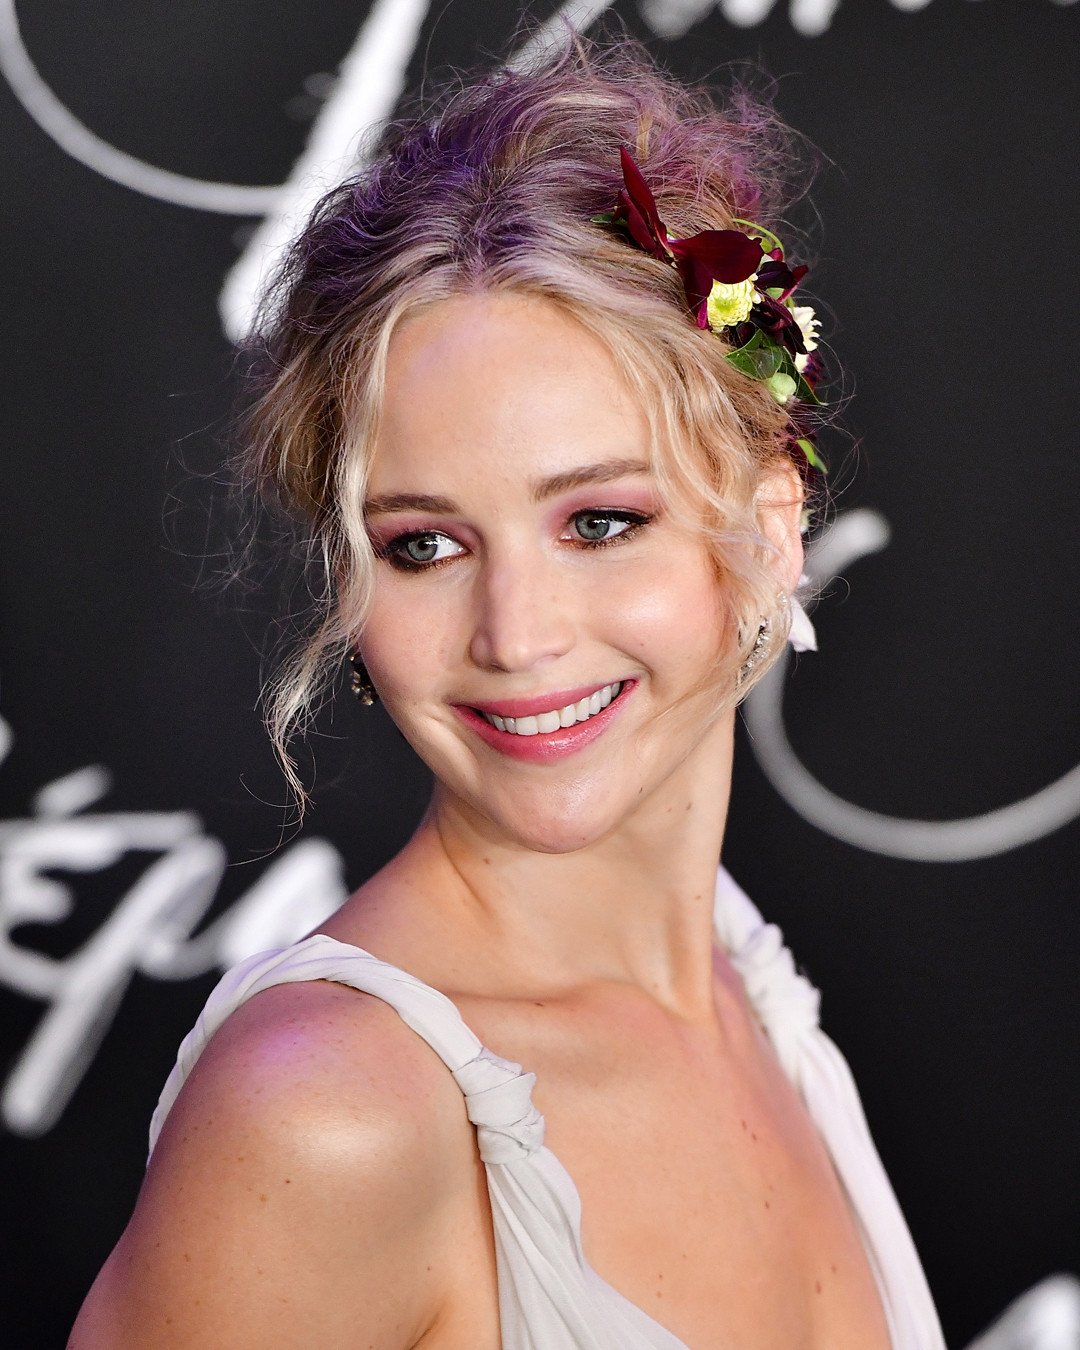 ESC: Hair Accessories, Jennifer Lawrence